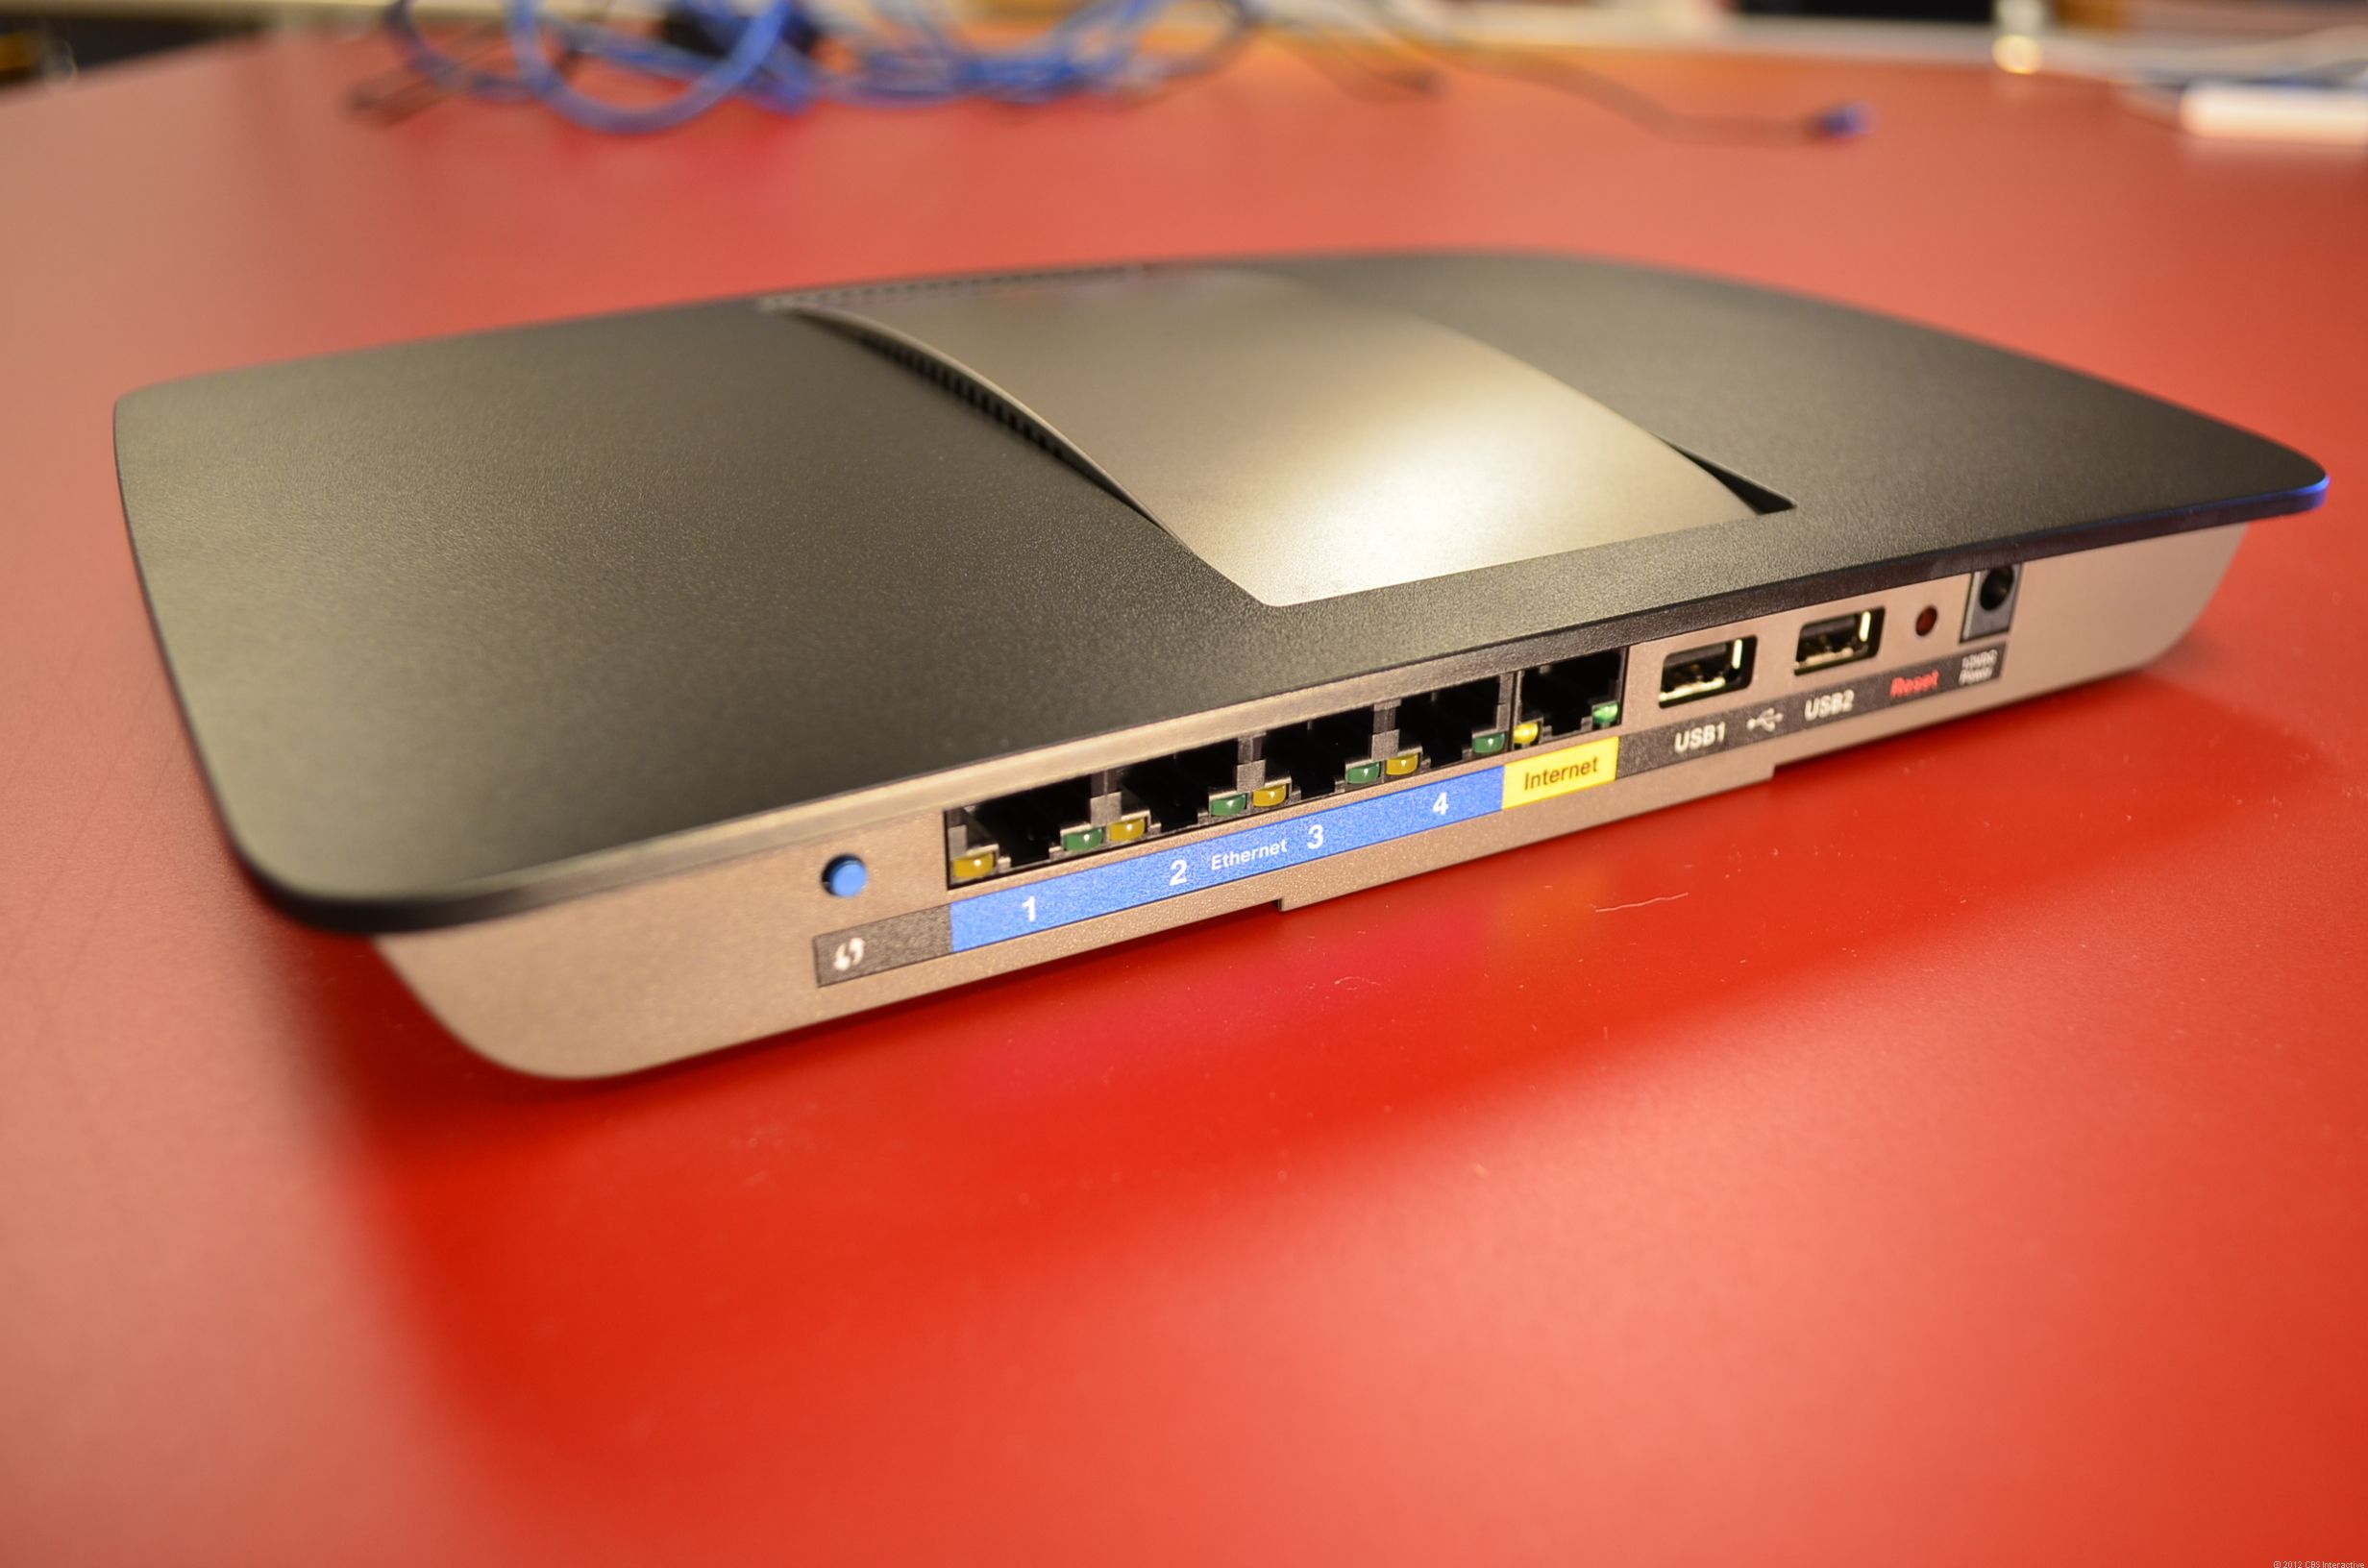 A Smart Wi-Fi router in the EA series from Linksys.